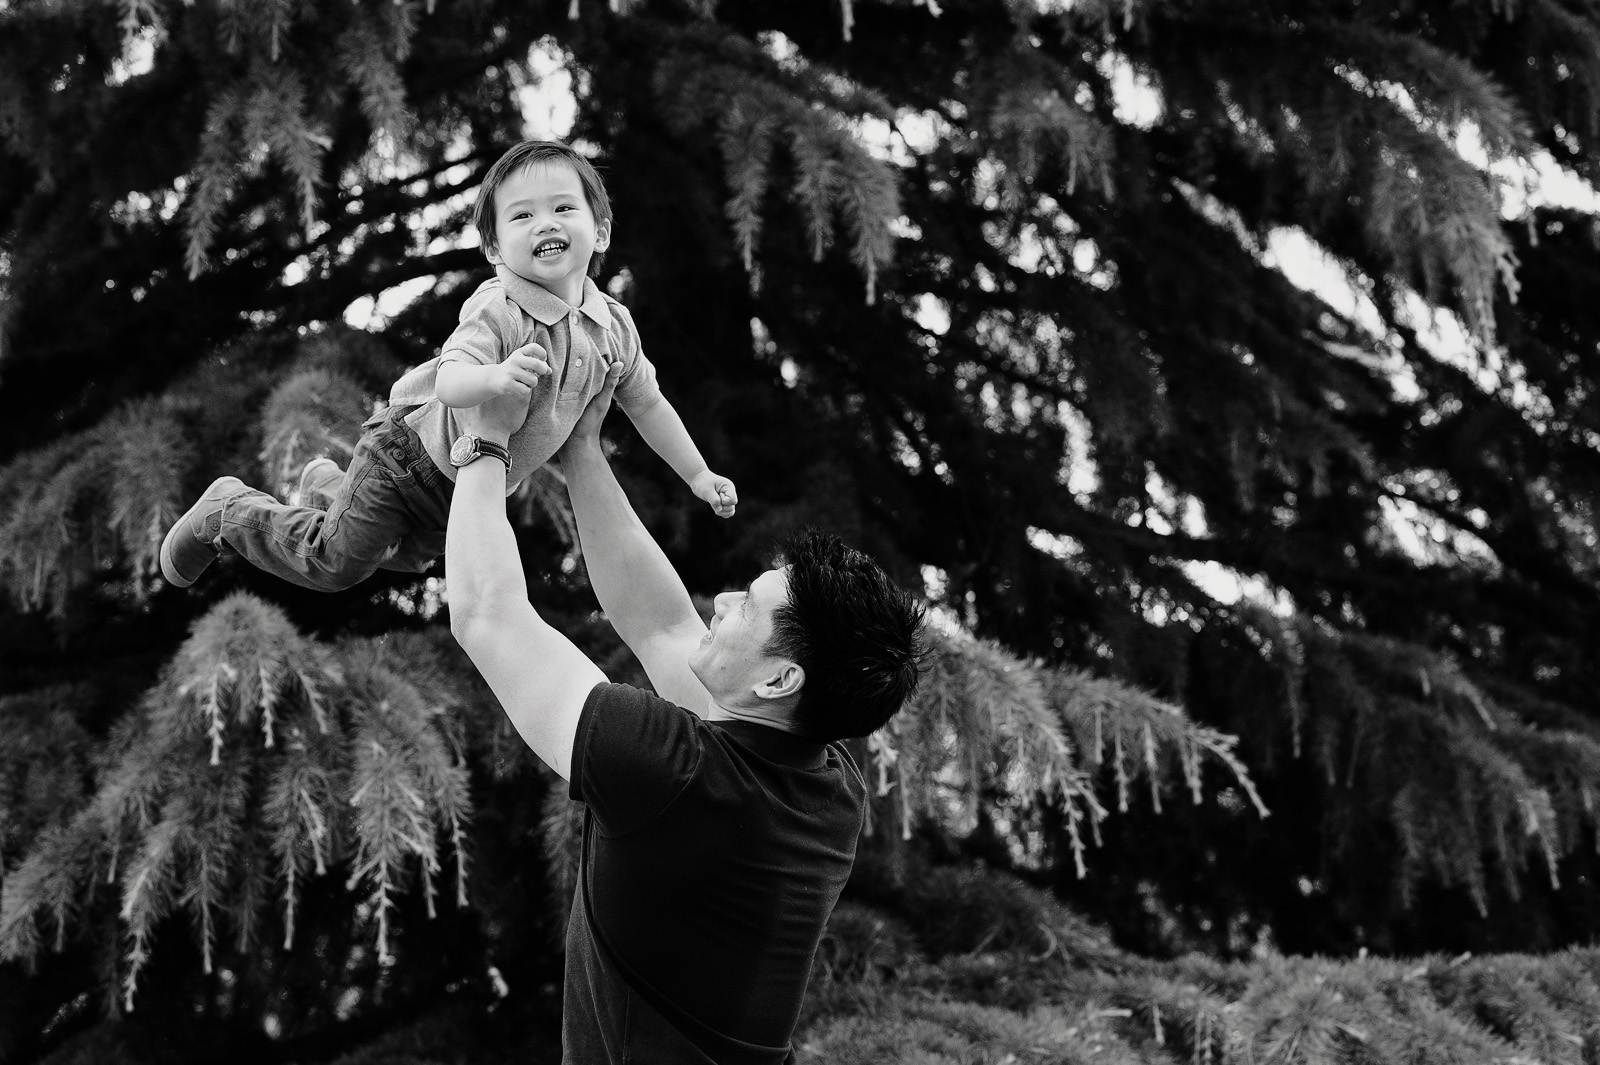 Dad lifting son creative family photographer Greenwich Park London